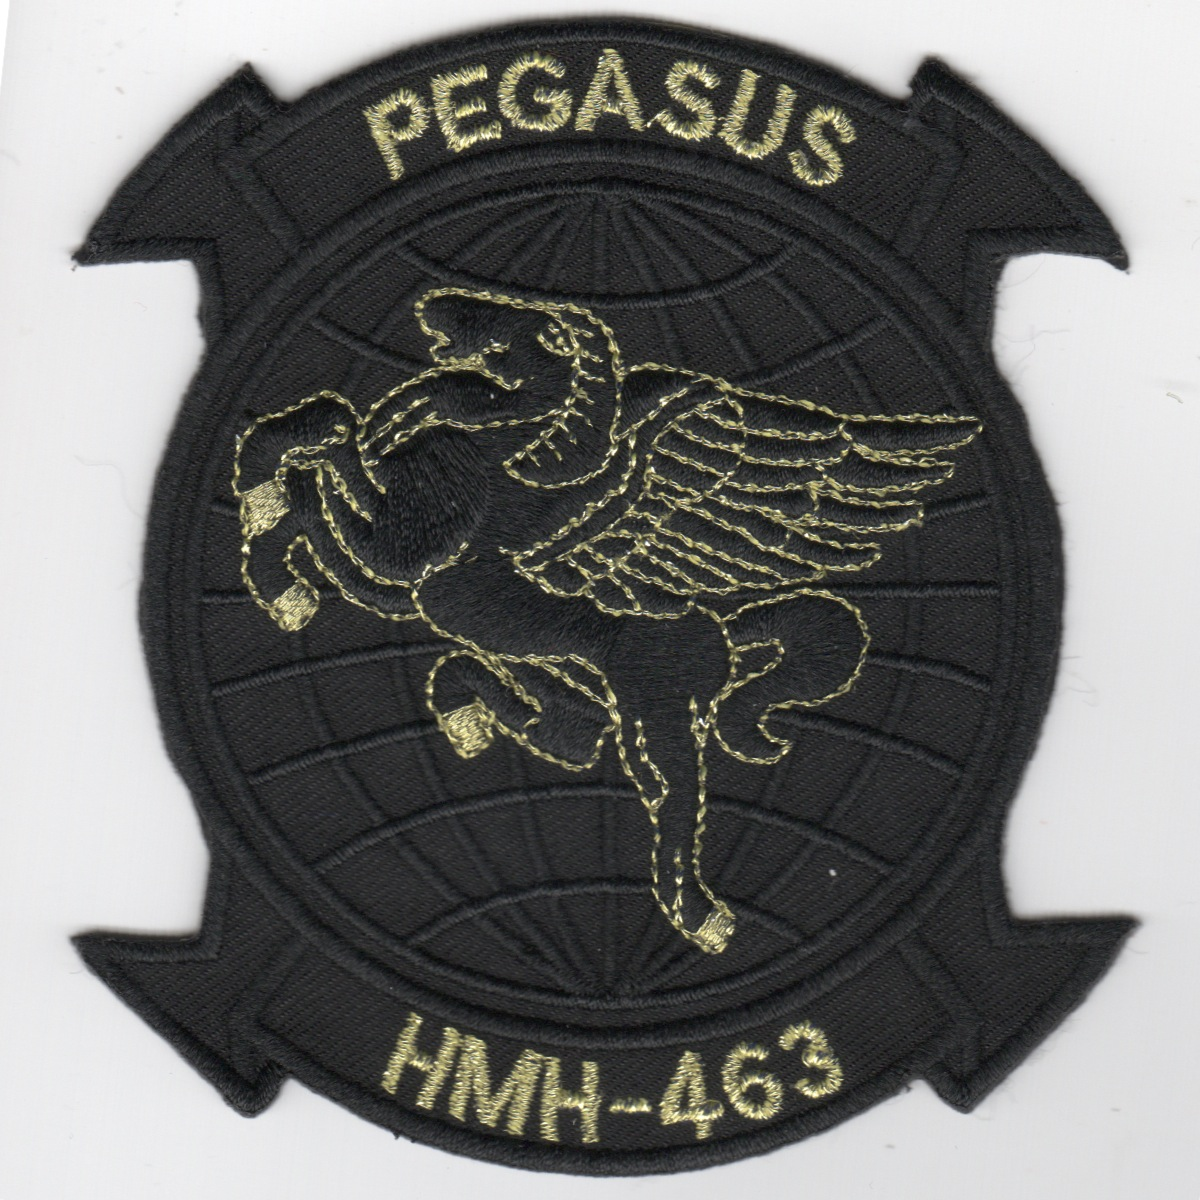 HMH-463 'Pegasus' Patch (Black/Gold Letters)